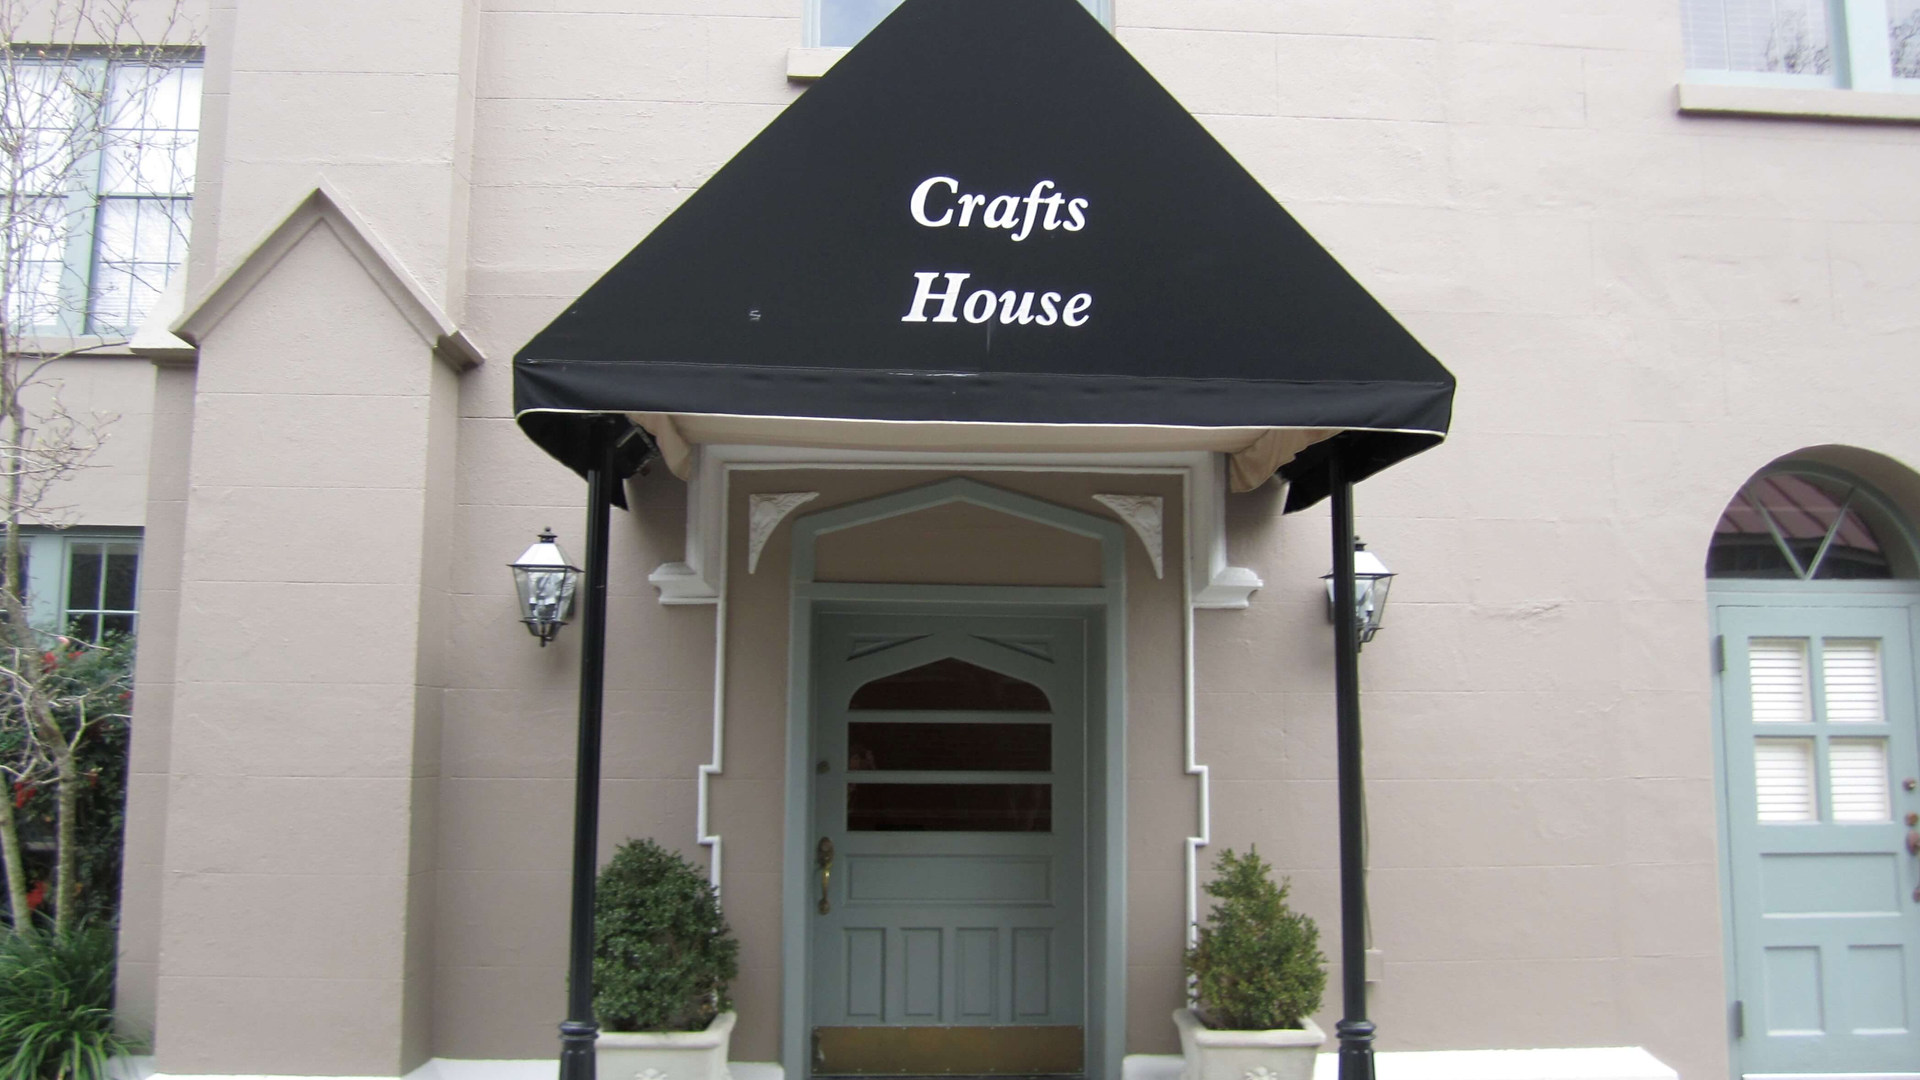 THE CRAFTS HOUSE